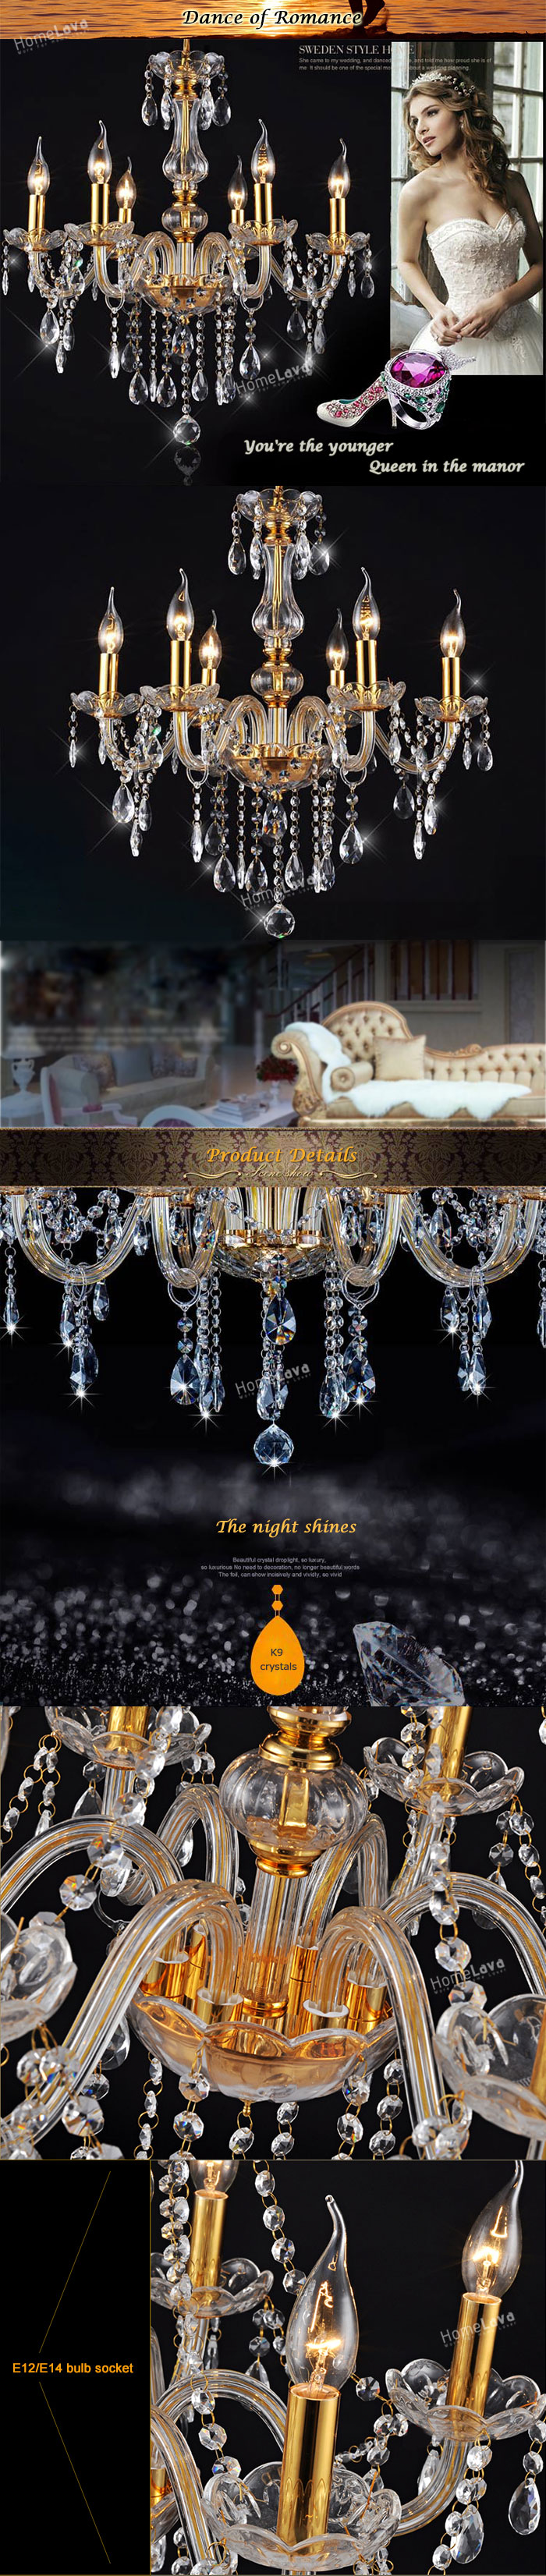 Chandeliers 6 Lights Golden Vintage in Crystal Feature Ceiling Lights(Dance Of Romance)